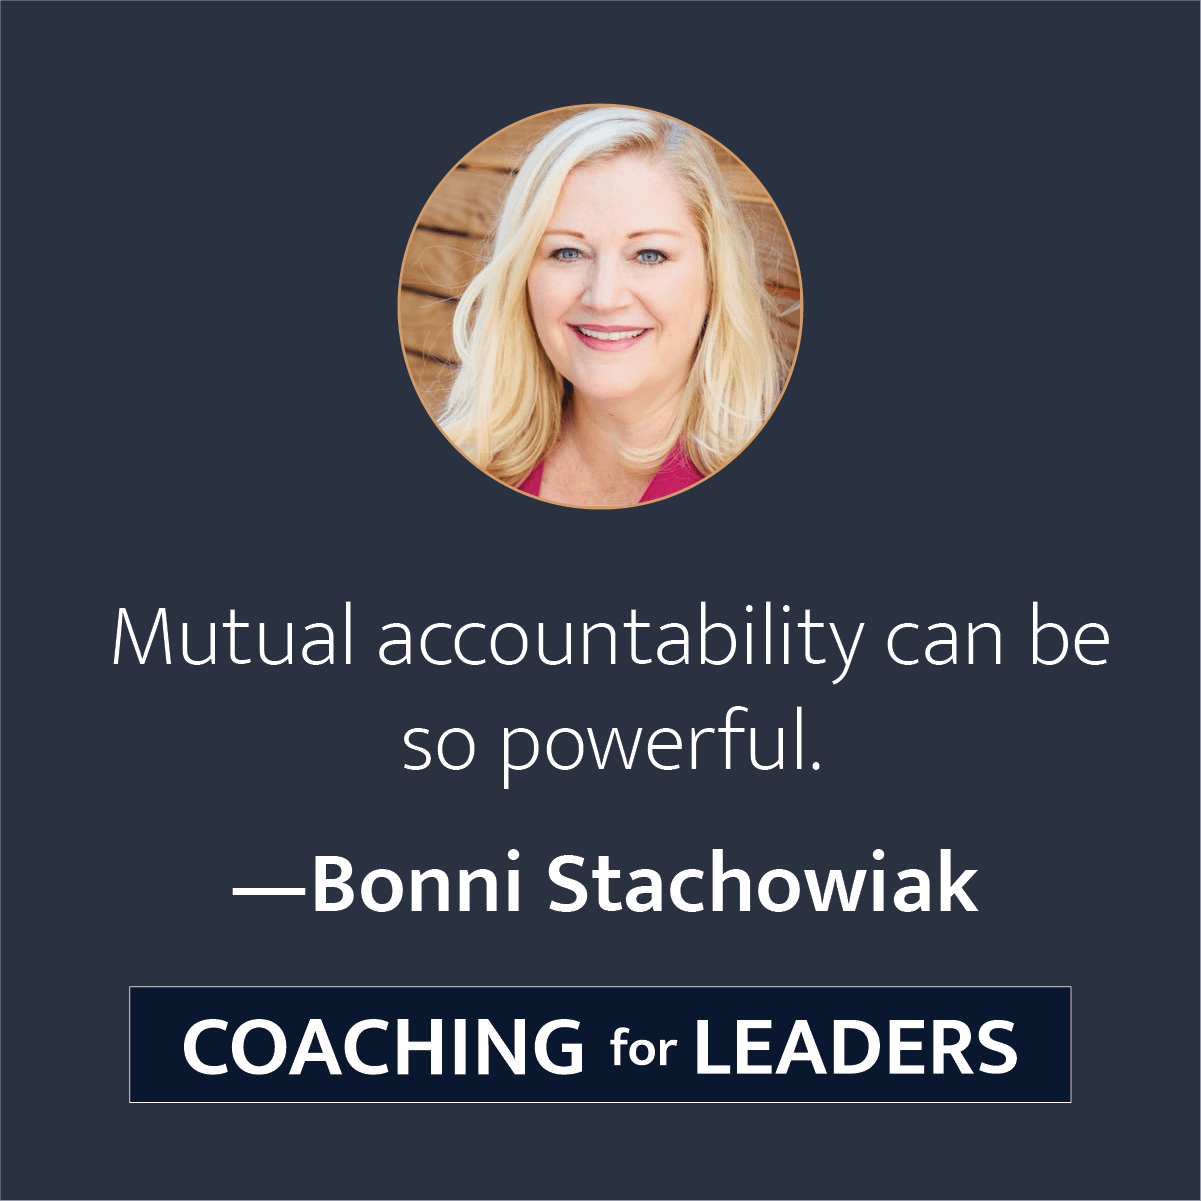 Mutual accountability can be so powerful.